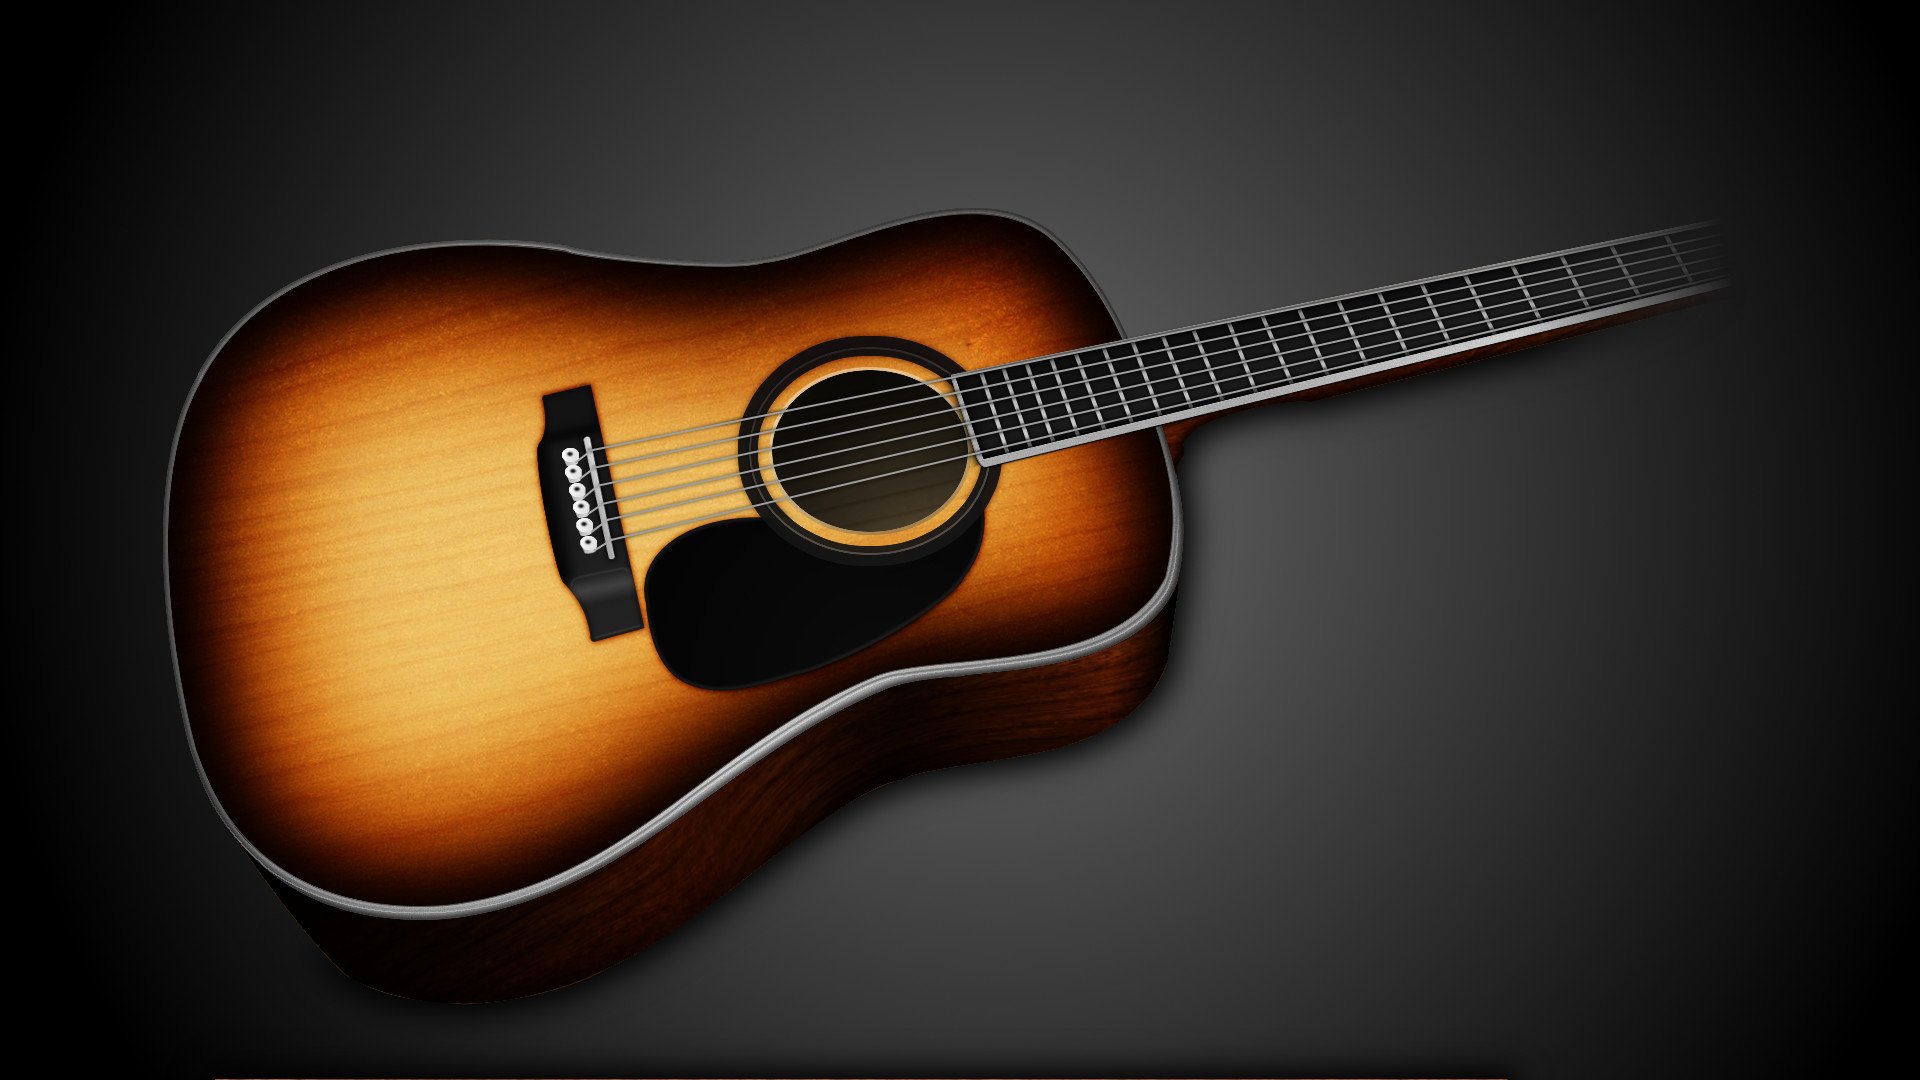 Pics Of Acoustic Guitar HD 1920x1080 Px Source Cool Wallpapers